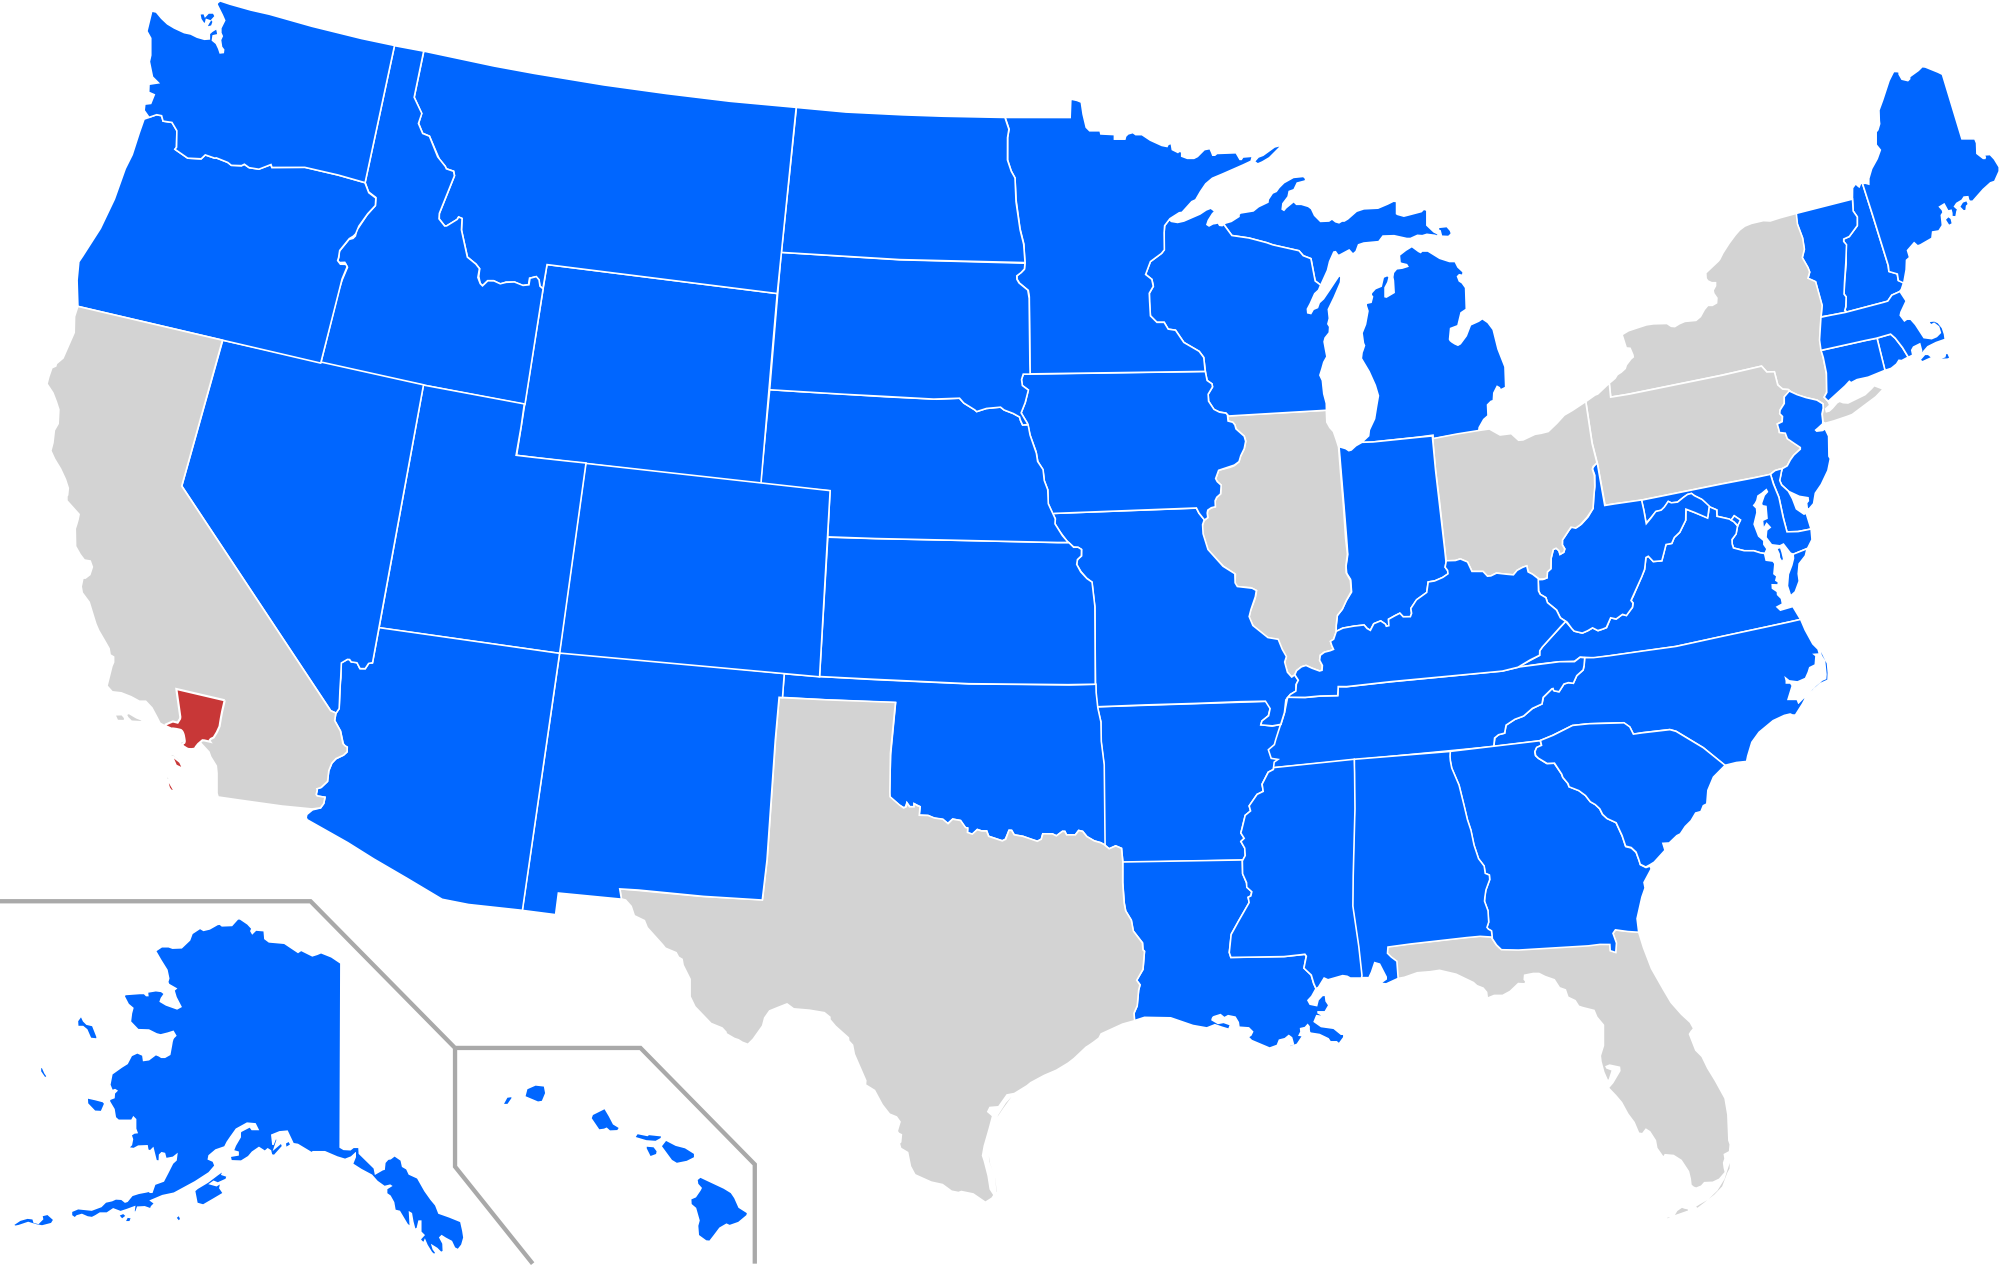 States with a smaller population than the 10 million inhabitants